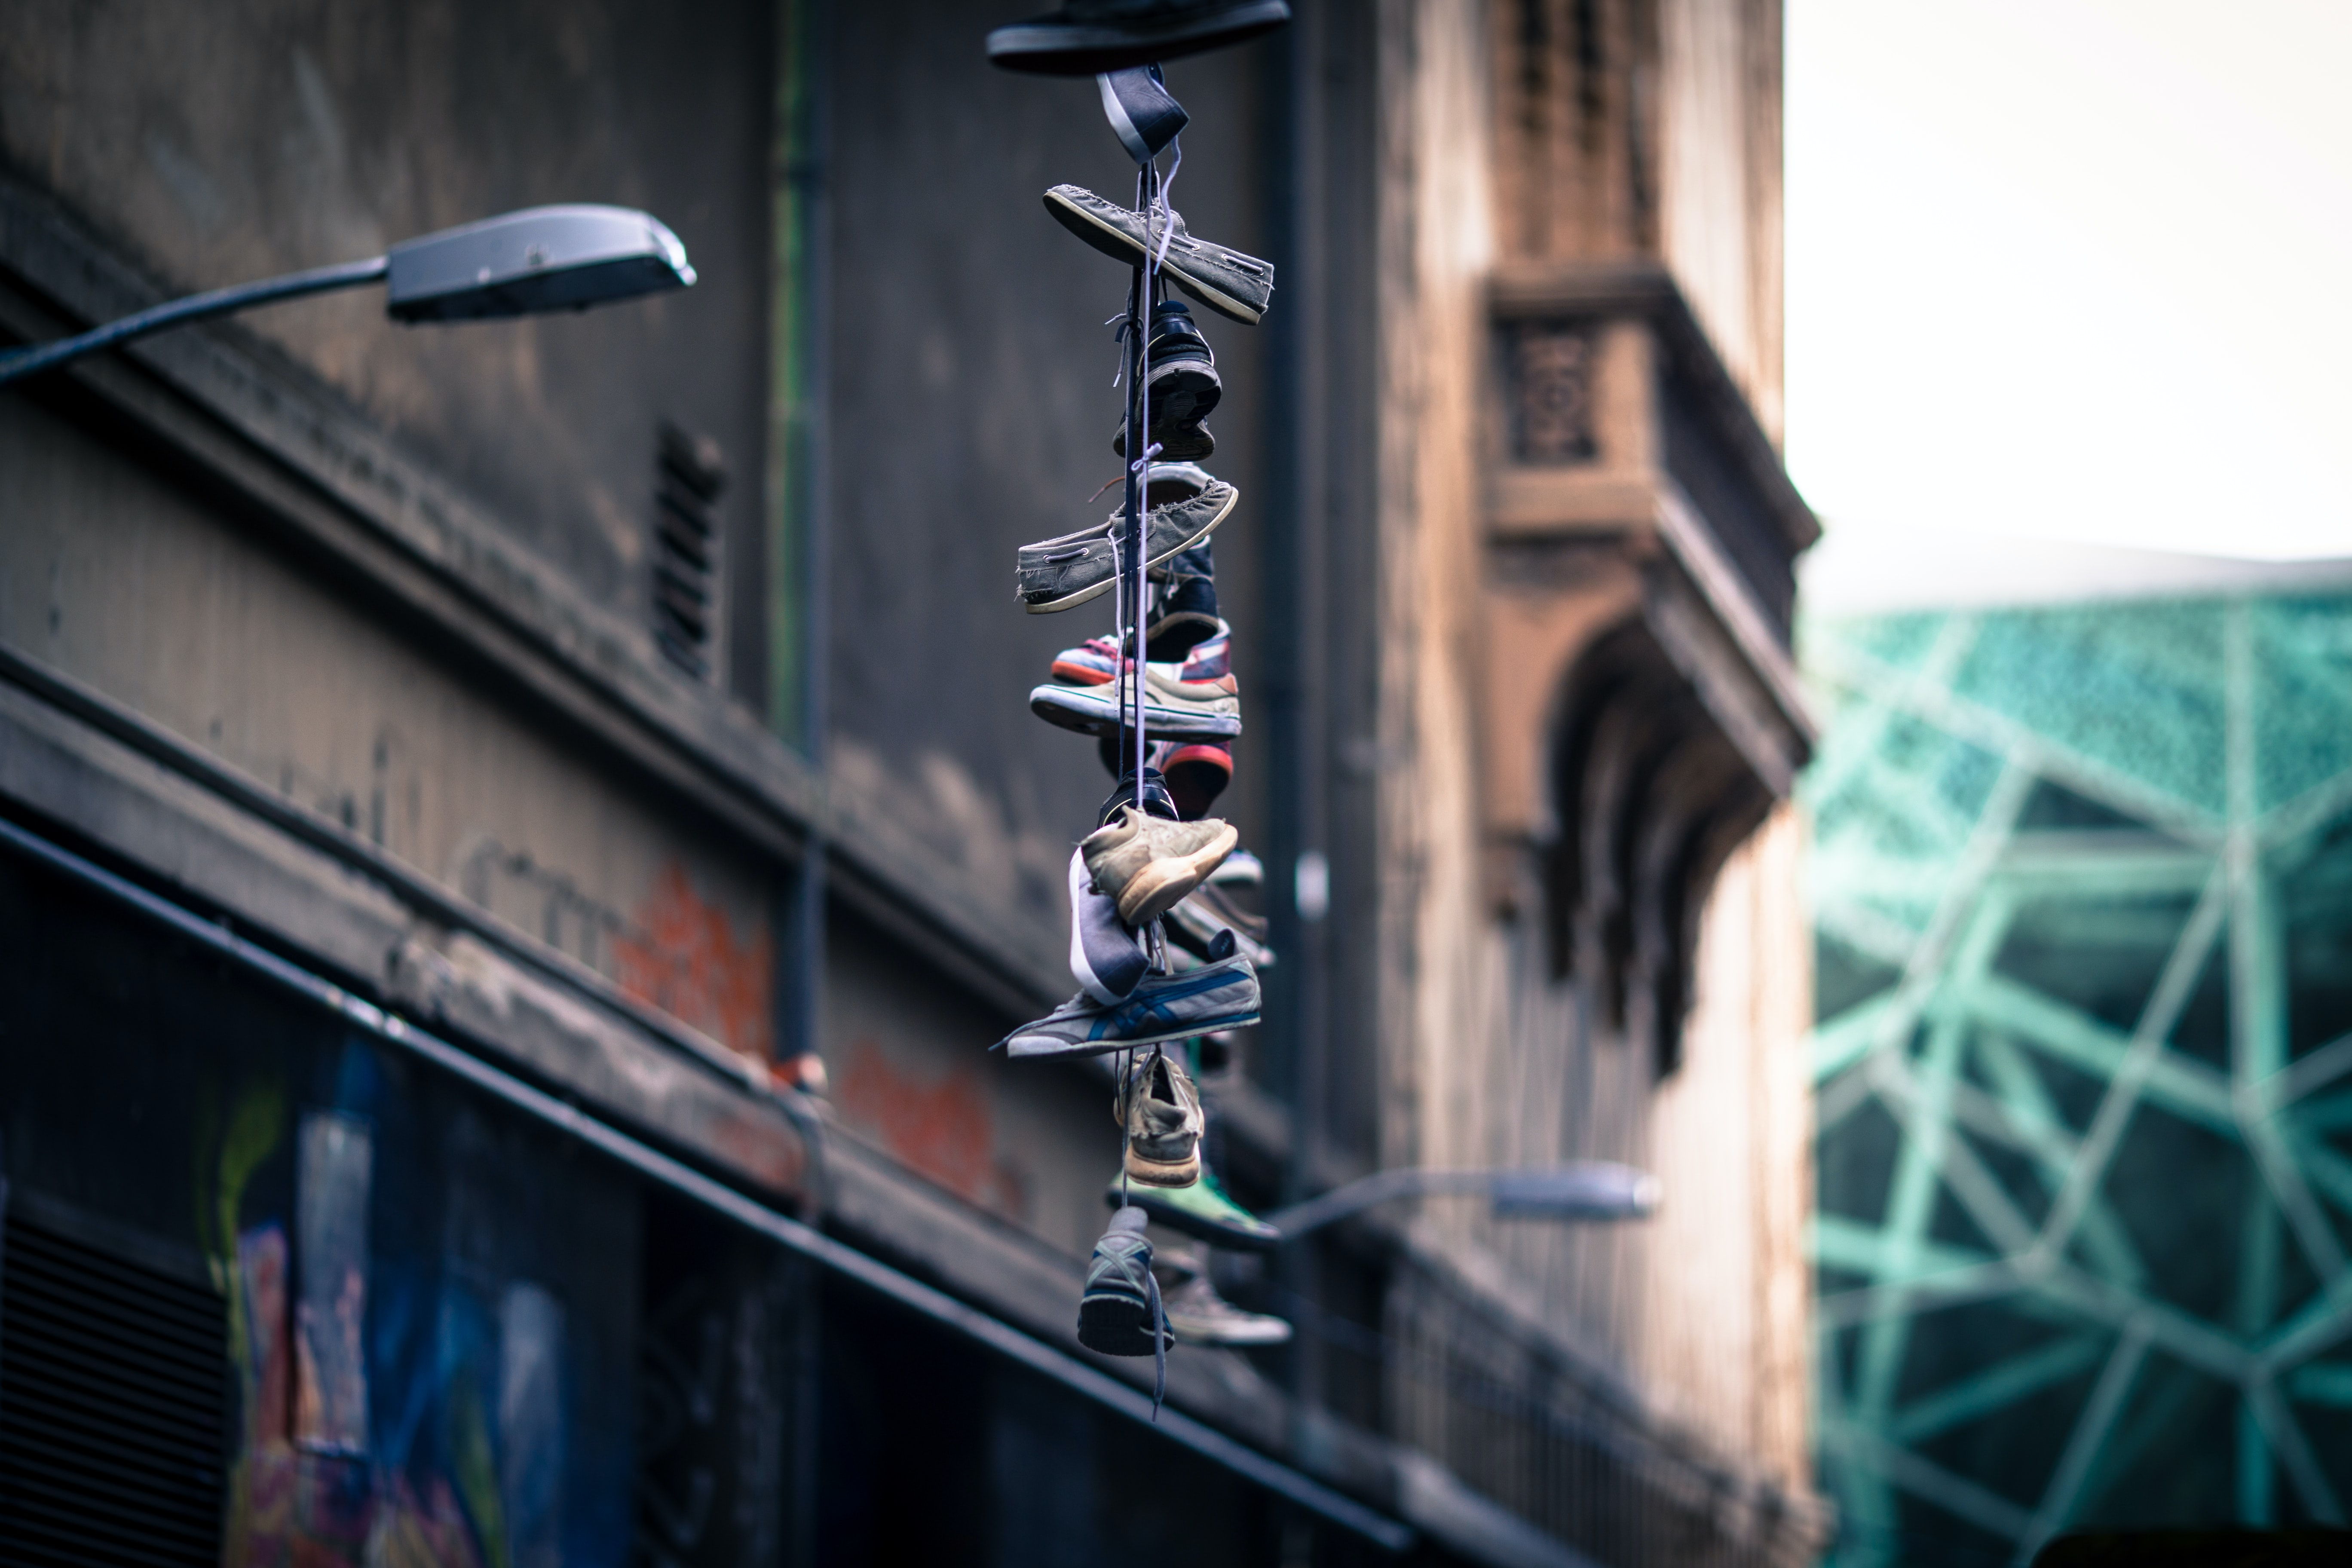 Multiple sneakers lace-tied together hanging from streetlight as tribute in decaying urban area, Hosier Lane